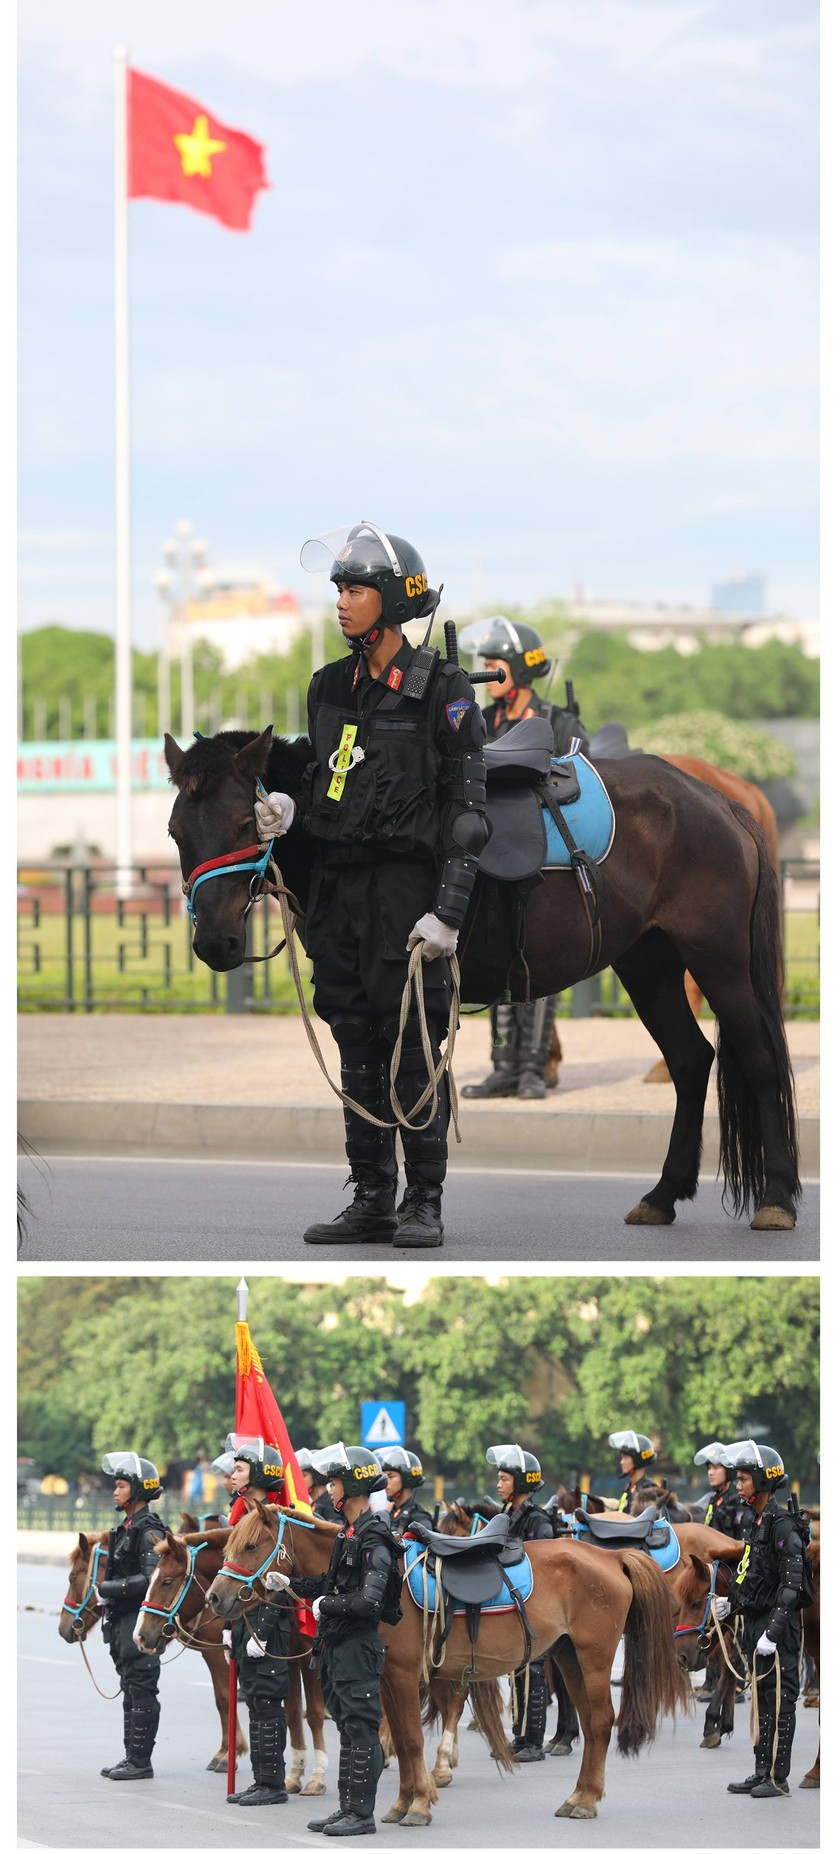 Cavalry Mobile Police Corps introduced for the first time to the public ảnh 6